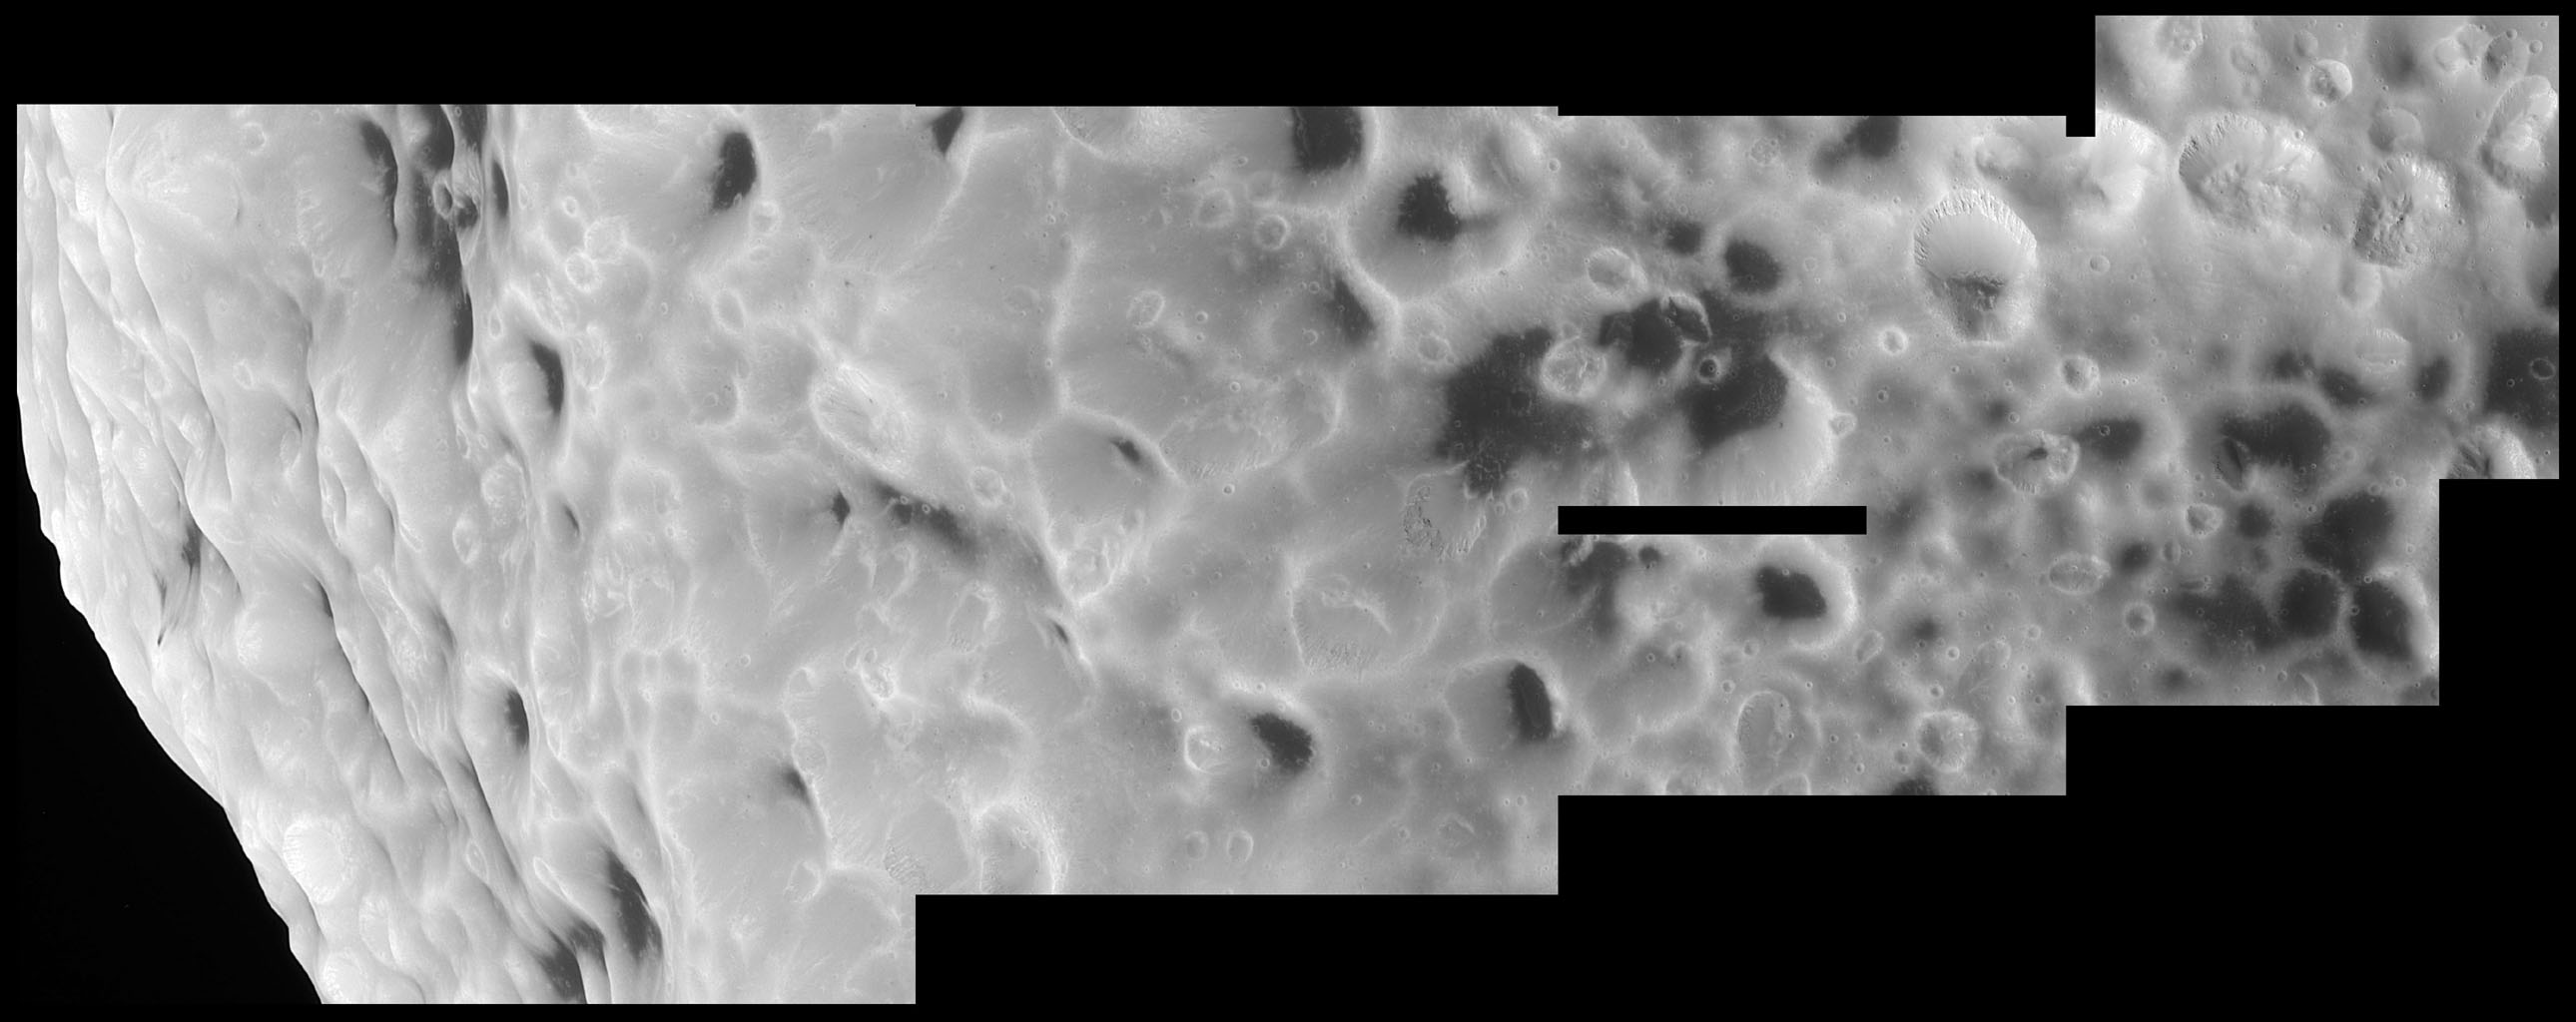 This high-resolution mosaic from NASA's Cassini spacecraft shows that Hyperion truly has a surface different from any other in the Saturn system. The images were taken during Cassini's close flyby of Hyperion on Sept. 26, 2005.